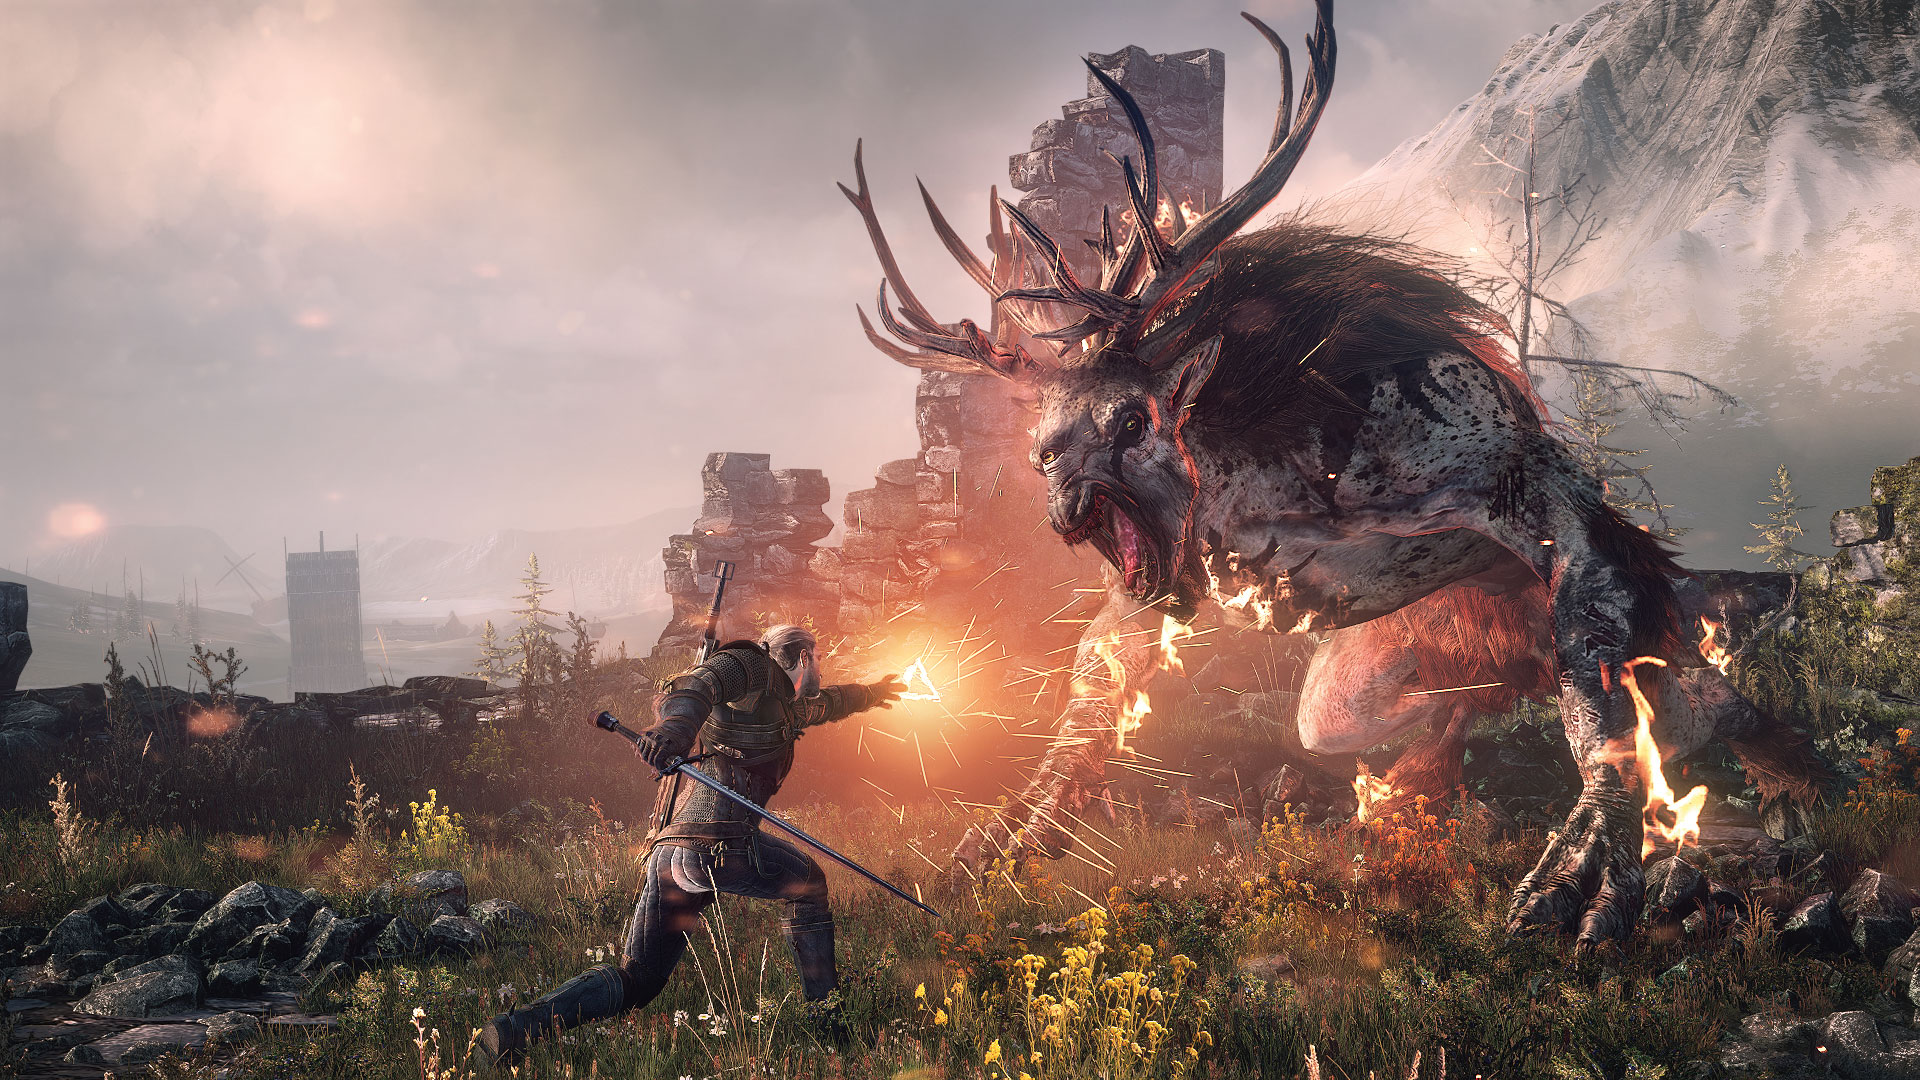 The Witcher 3: Wild Hunt (PS4) - Ihr habt ein Monster Problem?